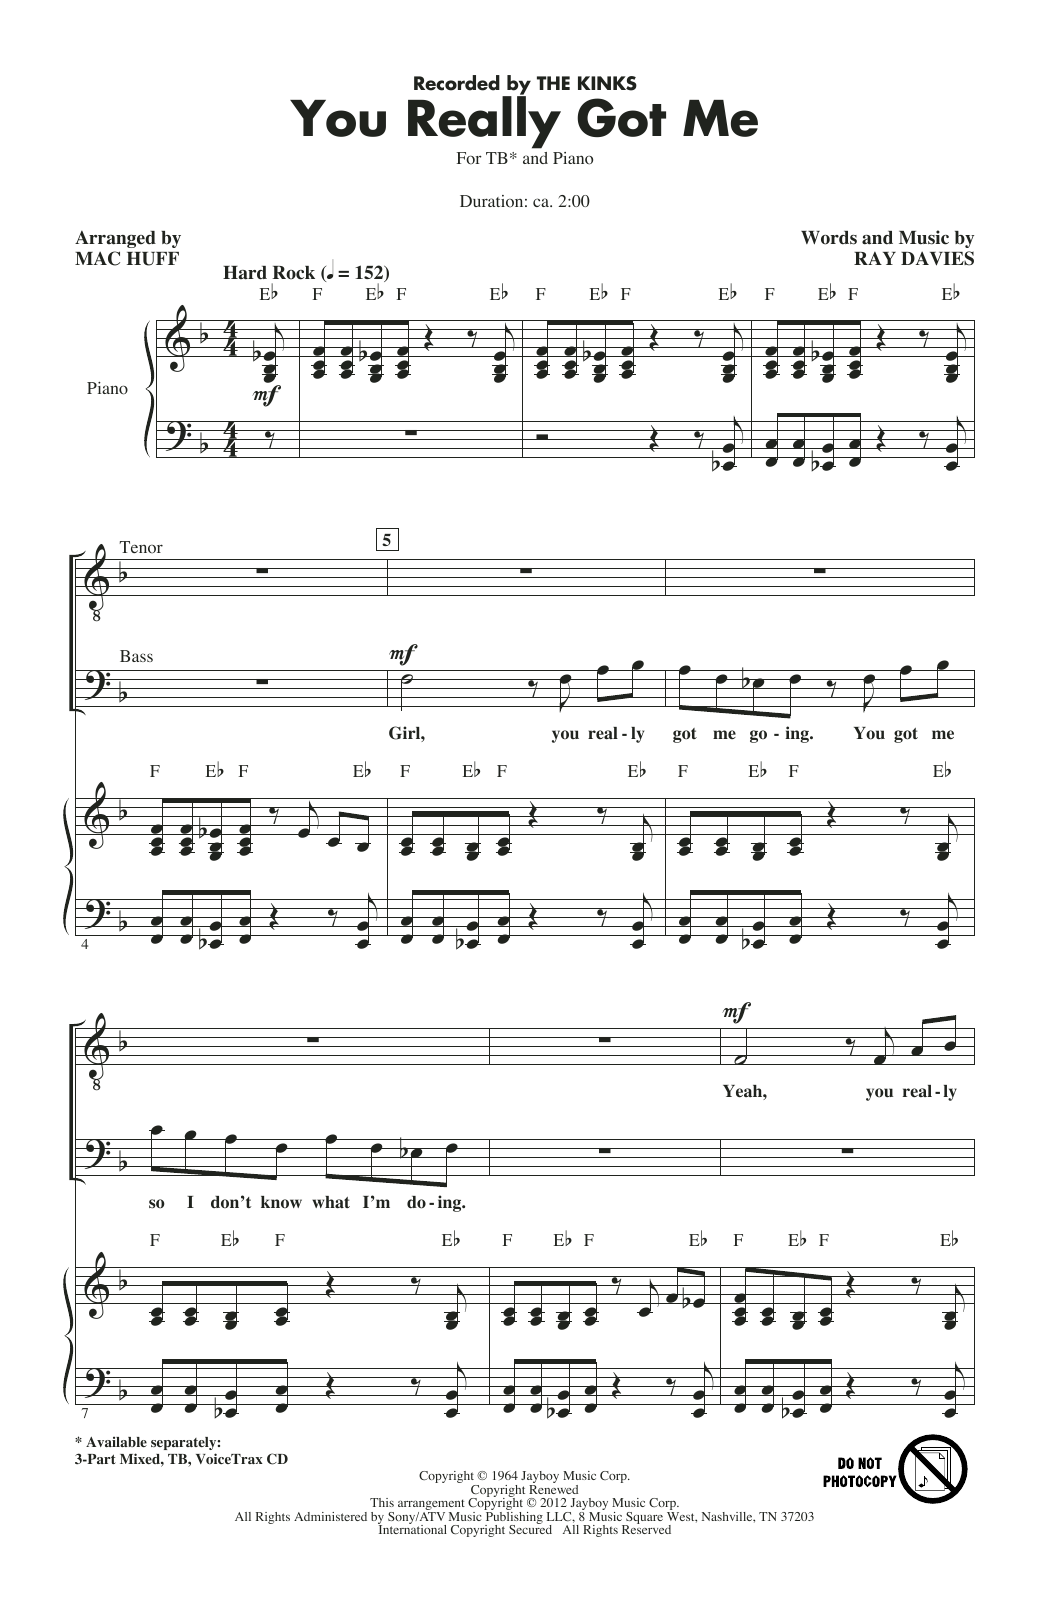 The Kinks You Really Got Me (arr. Mac Huff) sheet music notes and chords. Download Printable PDF.